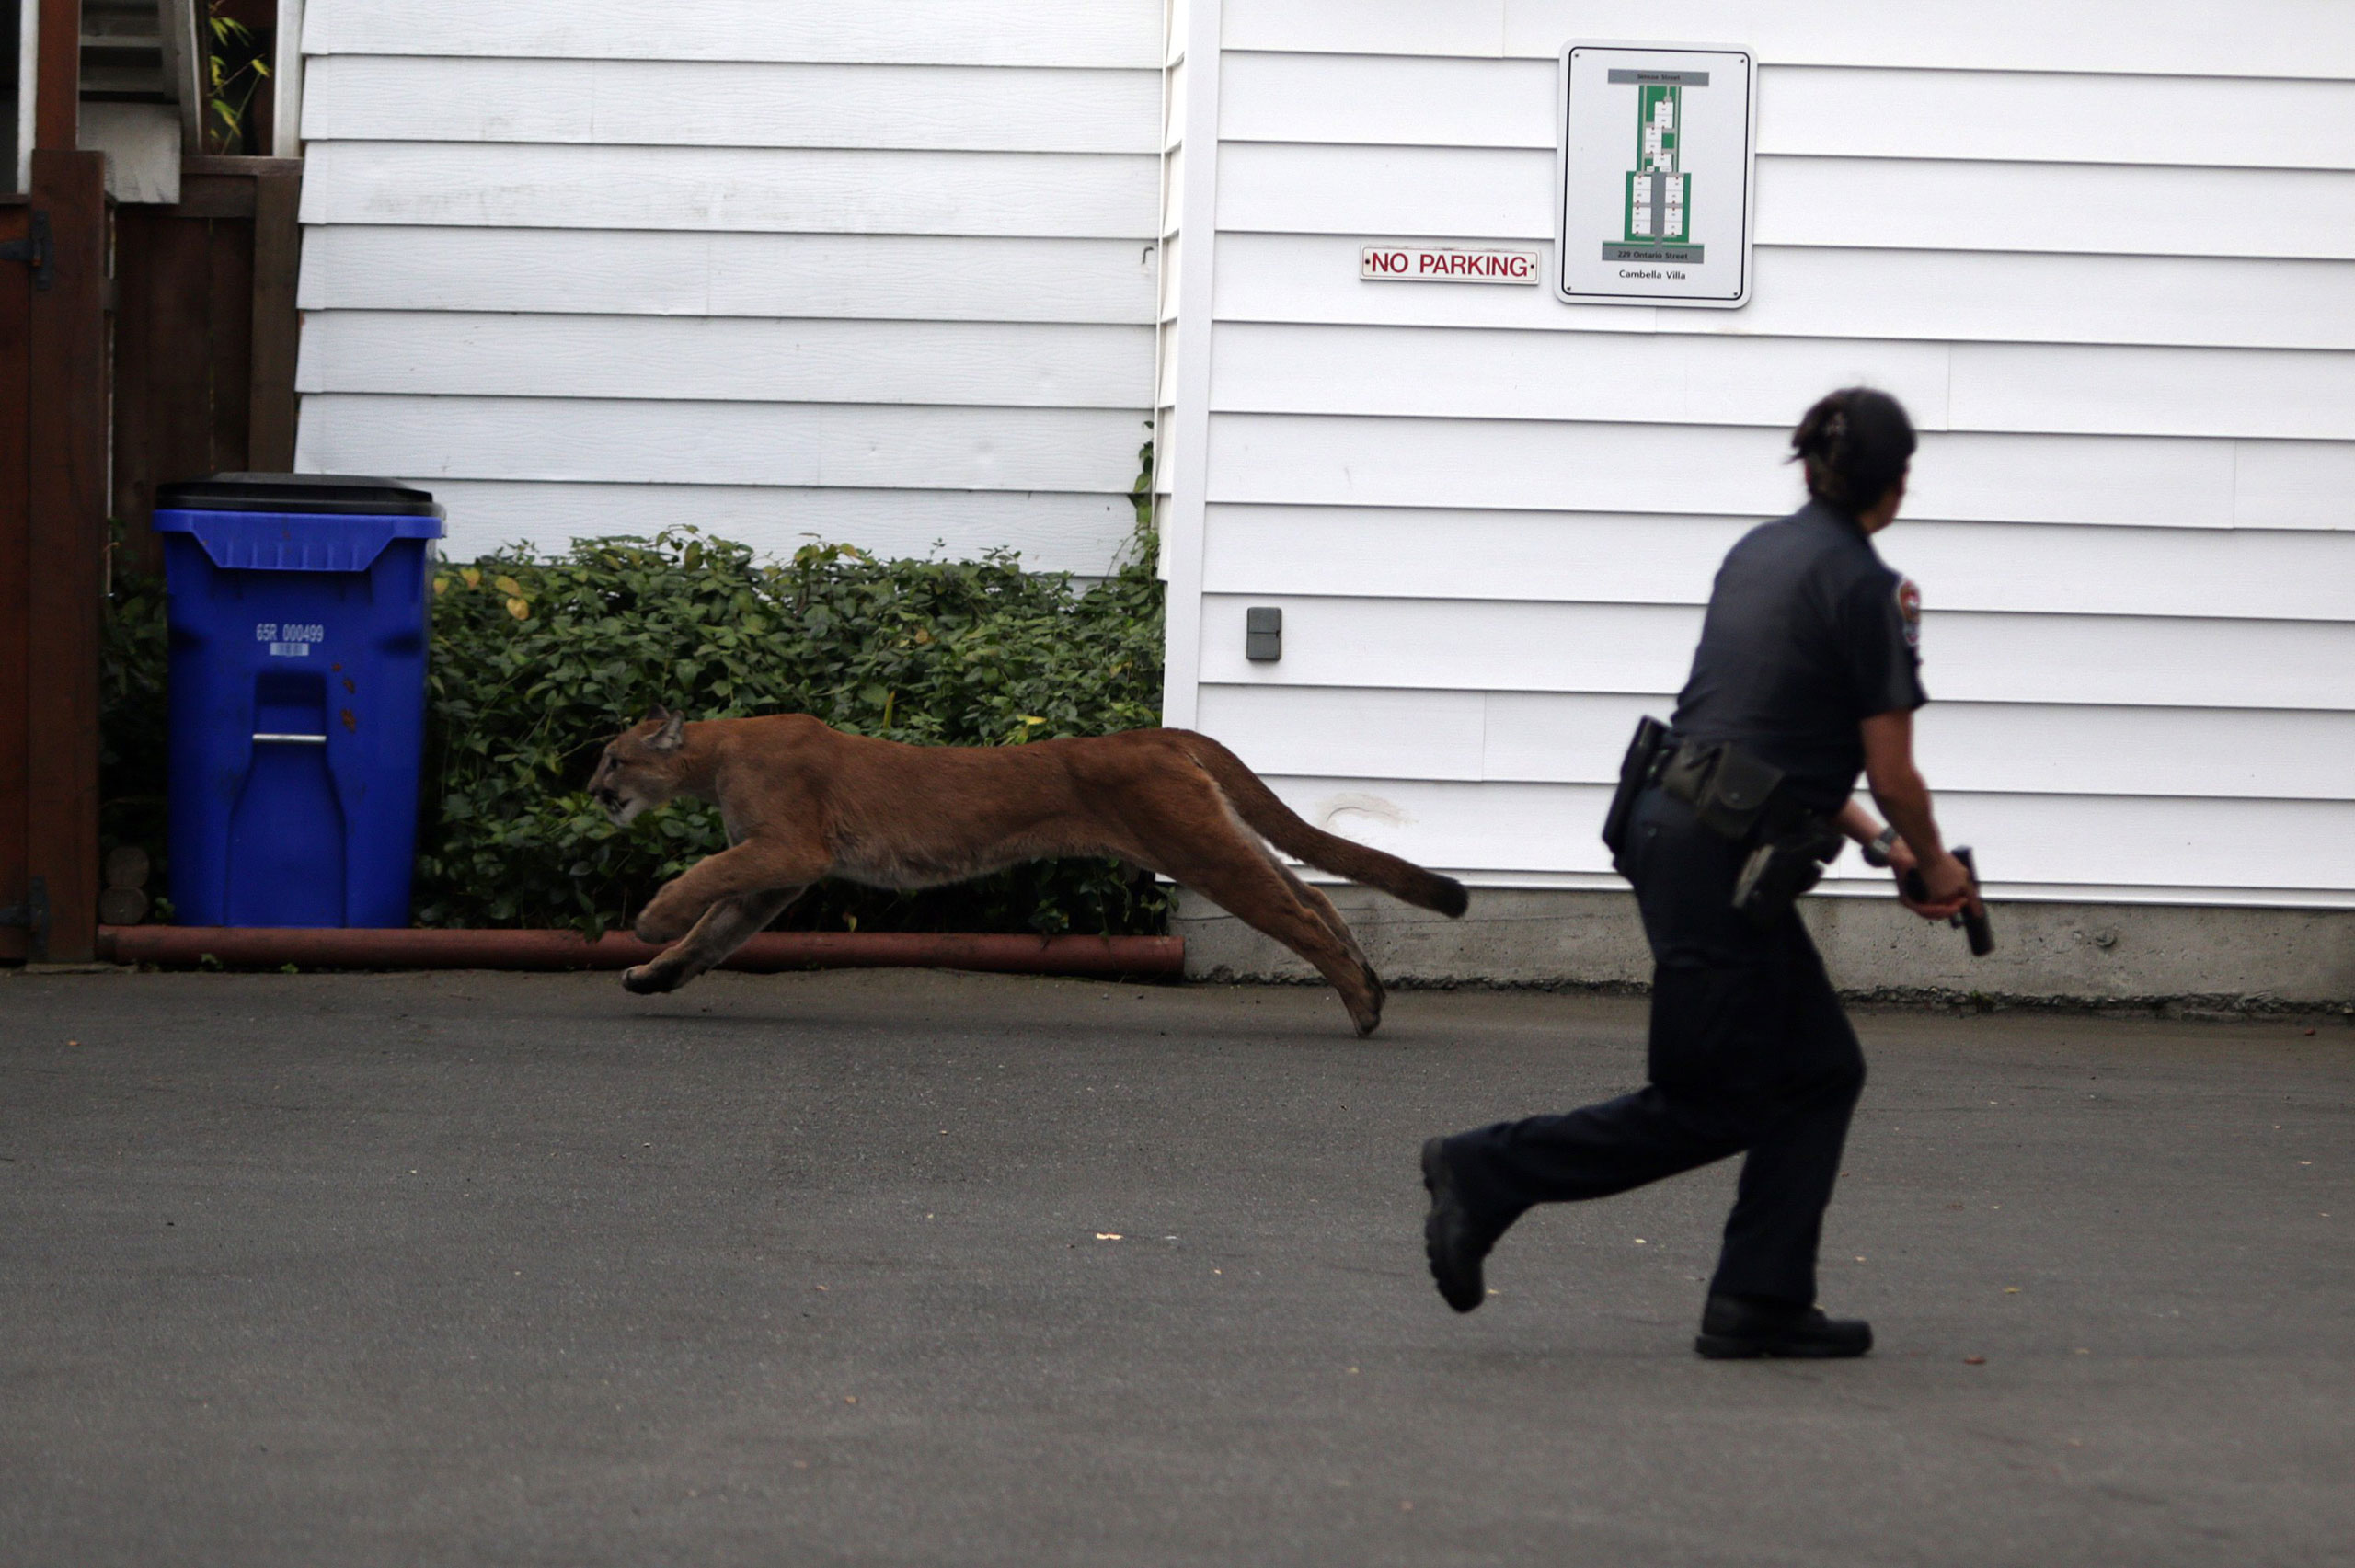 A police officer with her gun drawn is caught off guard as a wild cougar runs by in the parking lot of an apartment building in Victoria, Canda, Oct. 5, 2015.